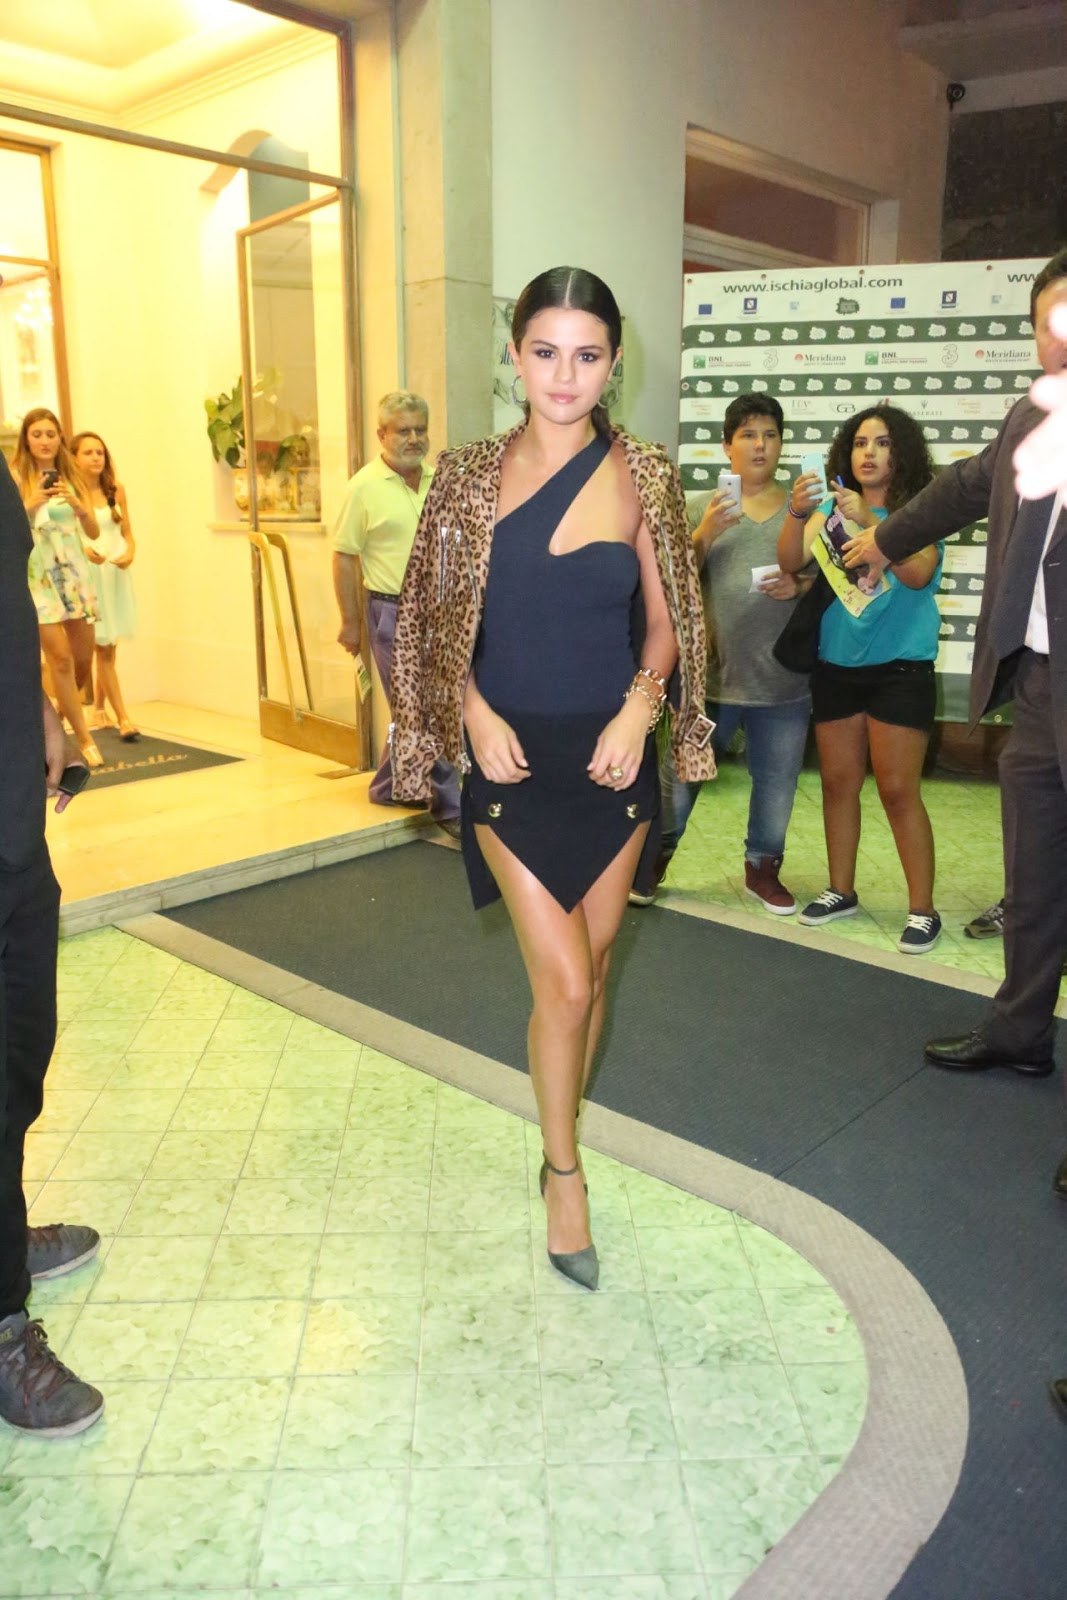 Teppich Leopard Selena Gomez Flaunts Long Legs In An Anthony Vaccarello